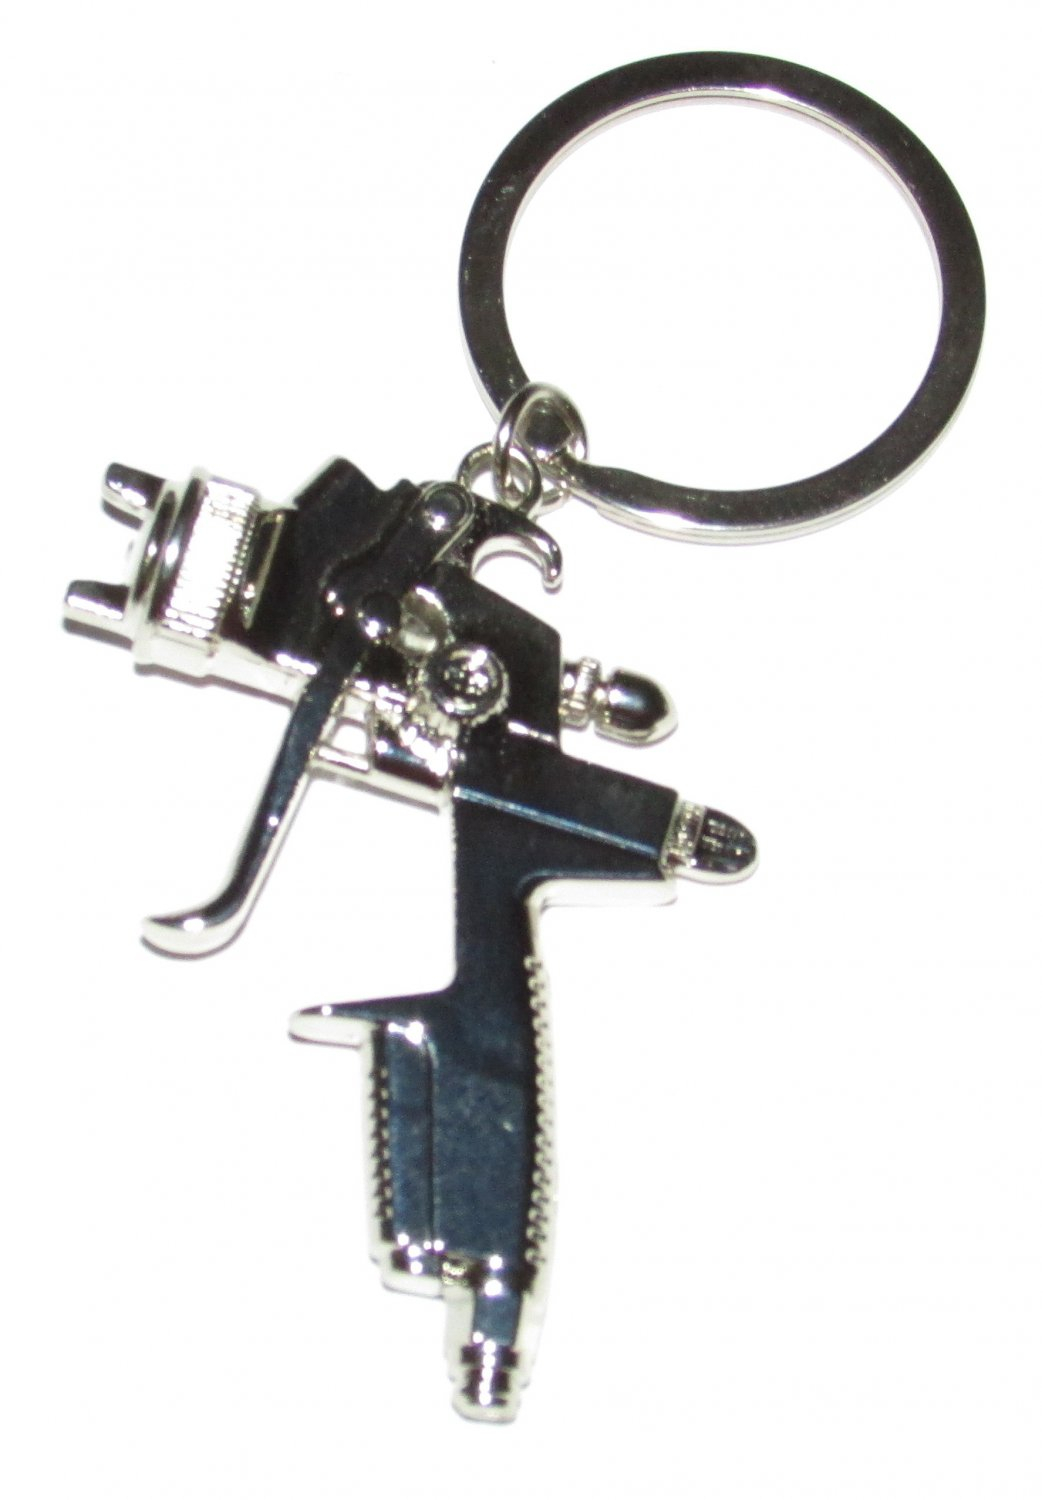 SPRAY PAINT Gun Silver Metal KEY CHAIN Ring Keychain NEW